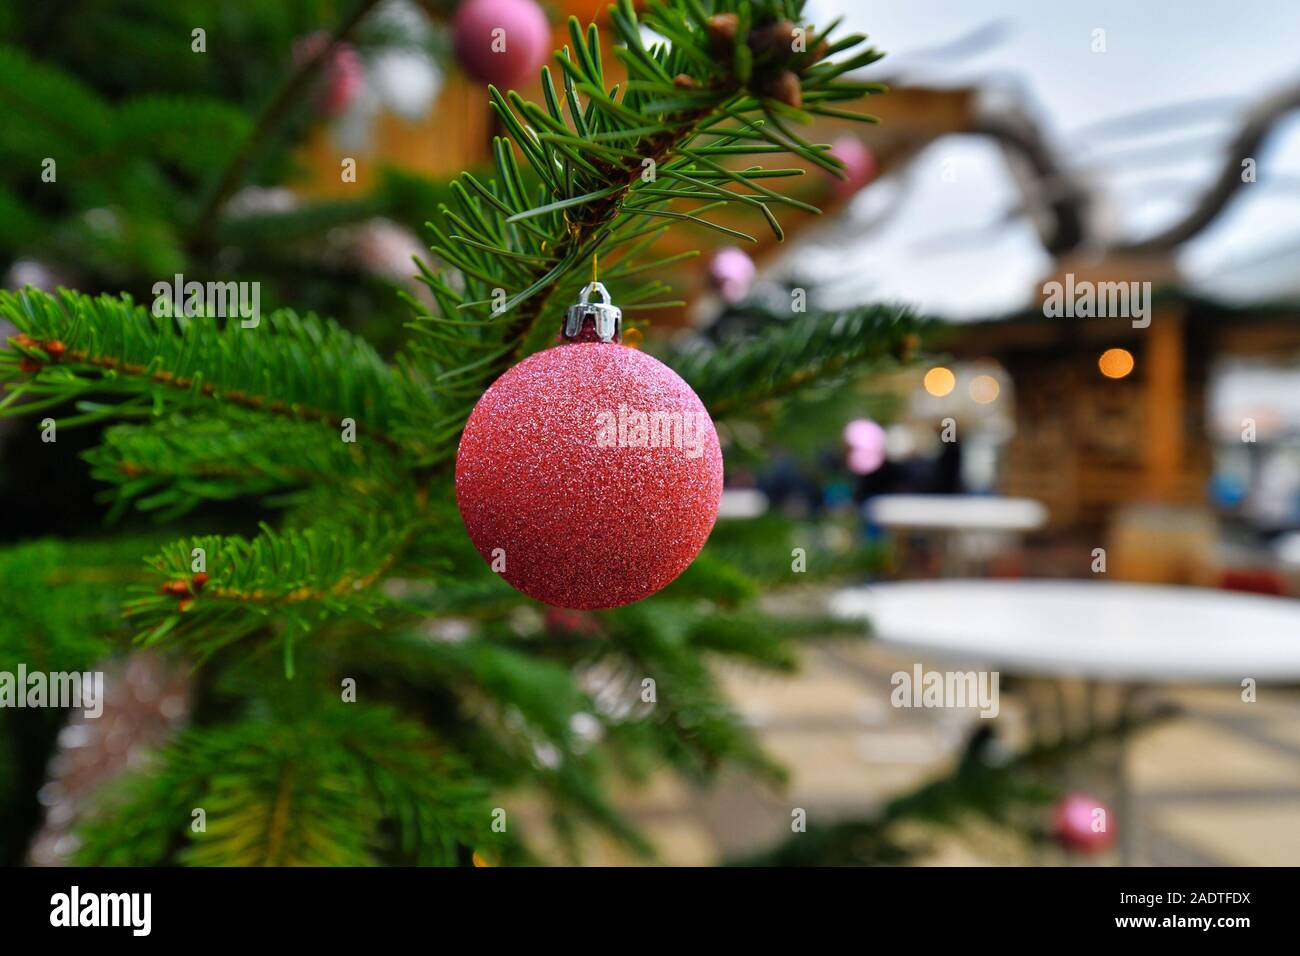 Sparkling Bright Pink Christmas Tree Ornament Bauble With Sales Booth In Blurry Background On Traditional Christmas Market Stock Photo Alamy